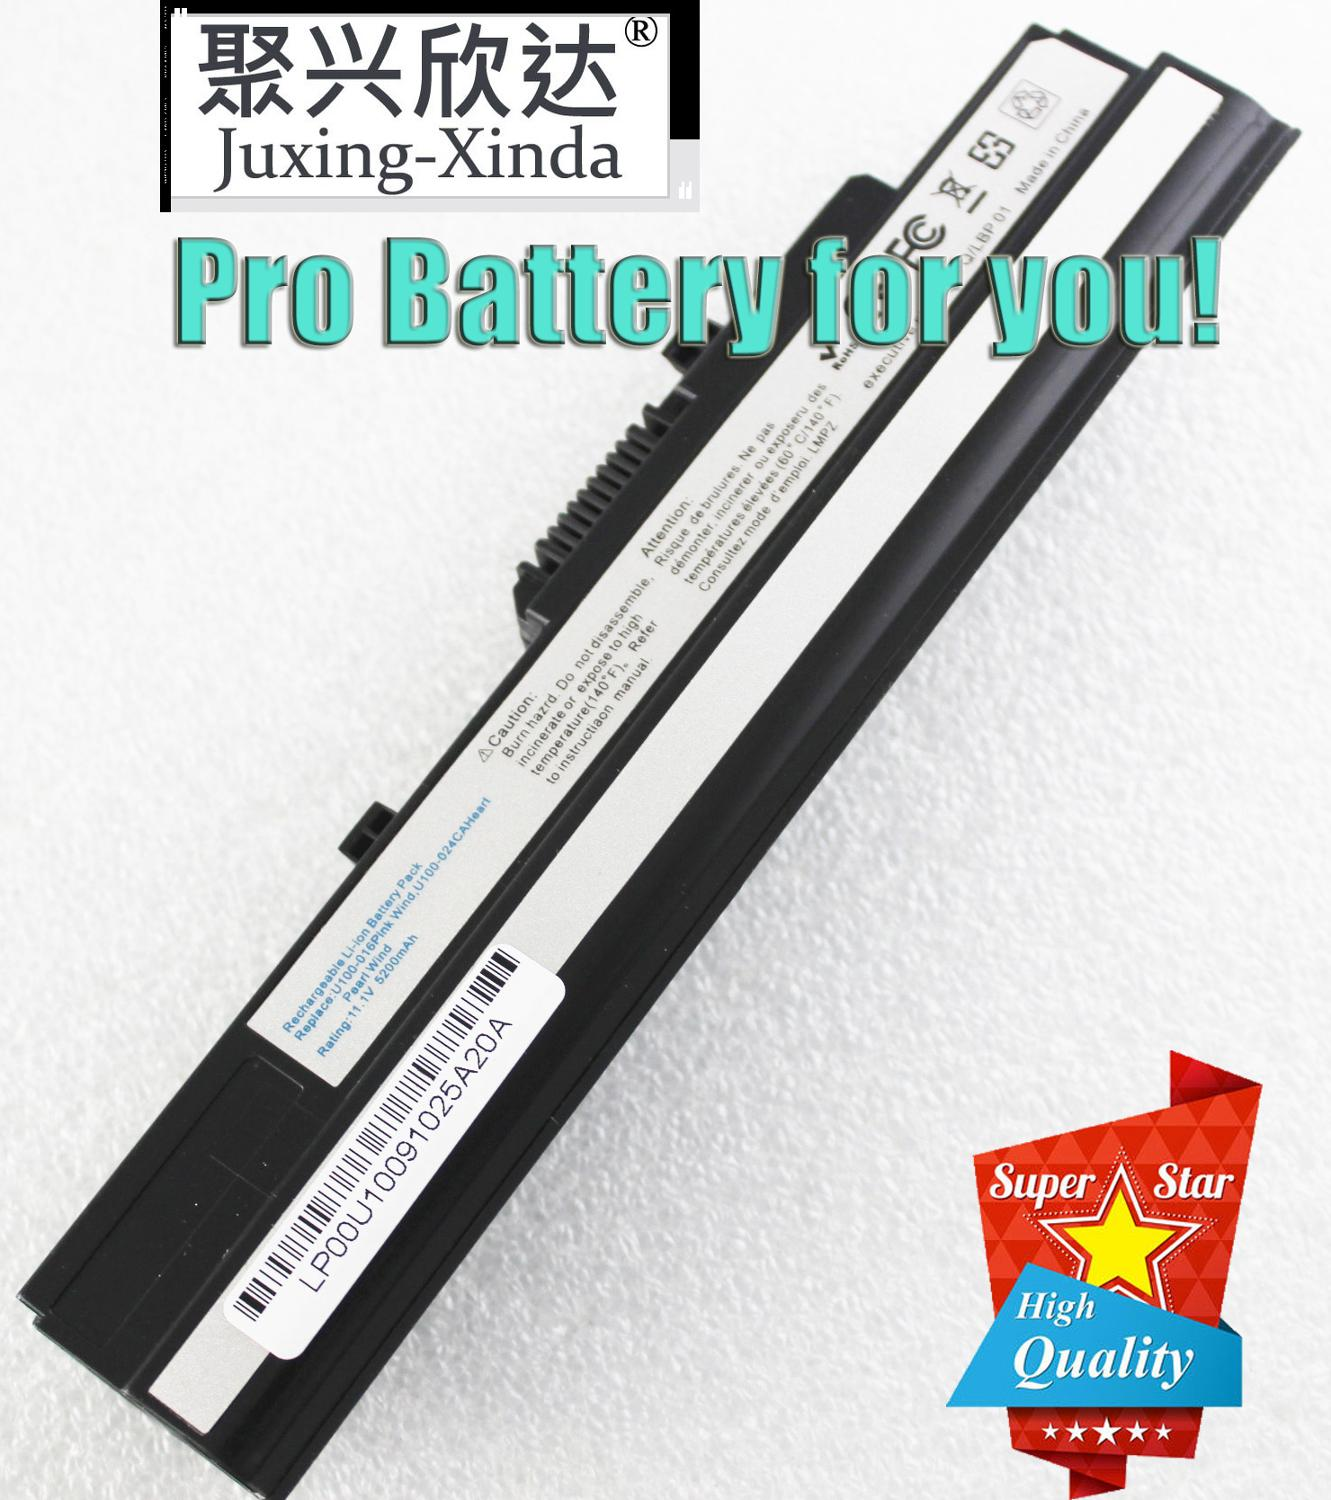 Laptop Battery For MSI BTY-S11 BTY-S12 Wind U100 L1300 L1350 L1350D U100X U100W U135DX U210 U270 U90X Wind12 U200 U210 U230 X110(China)